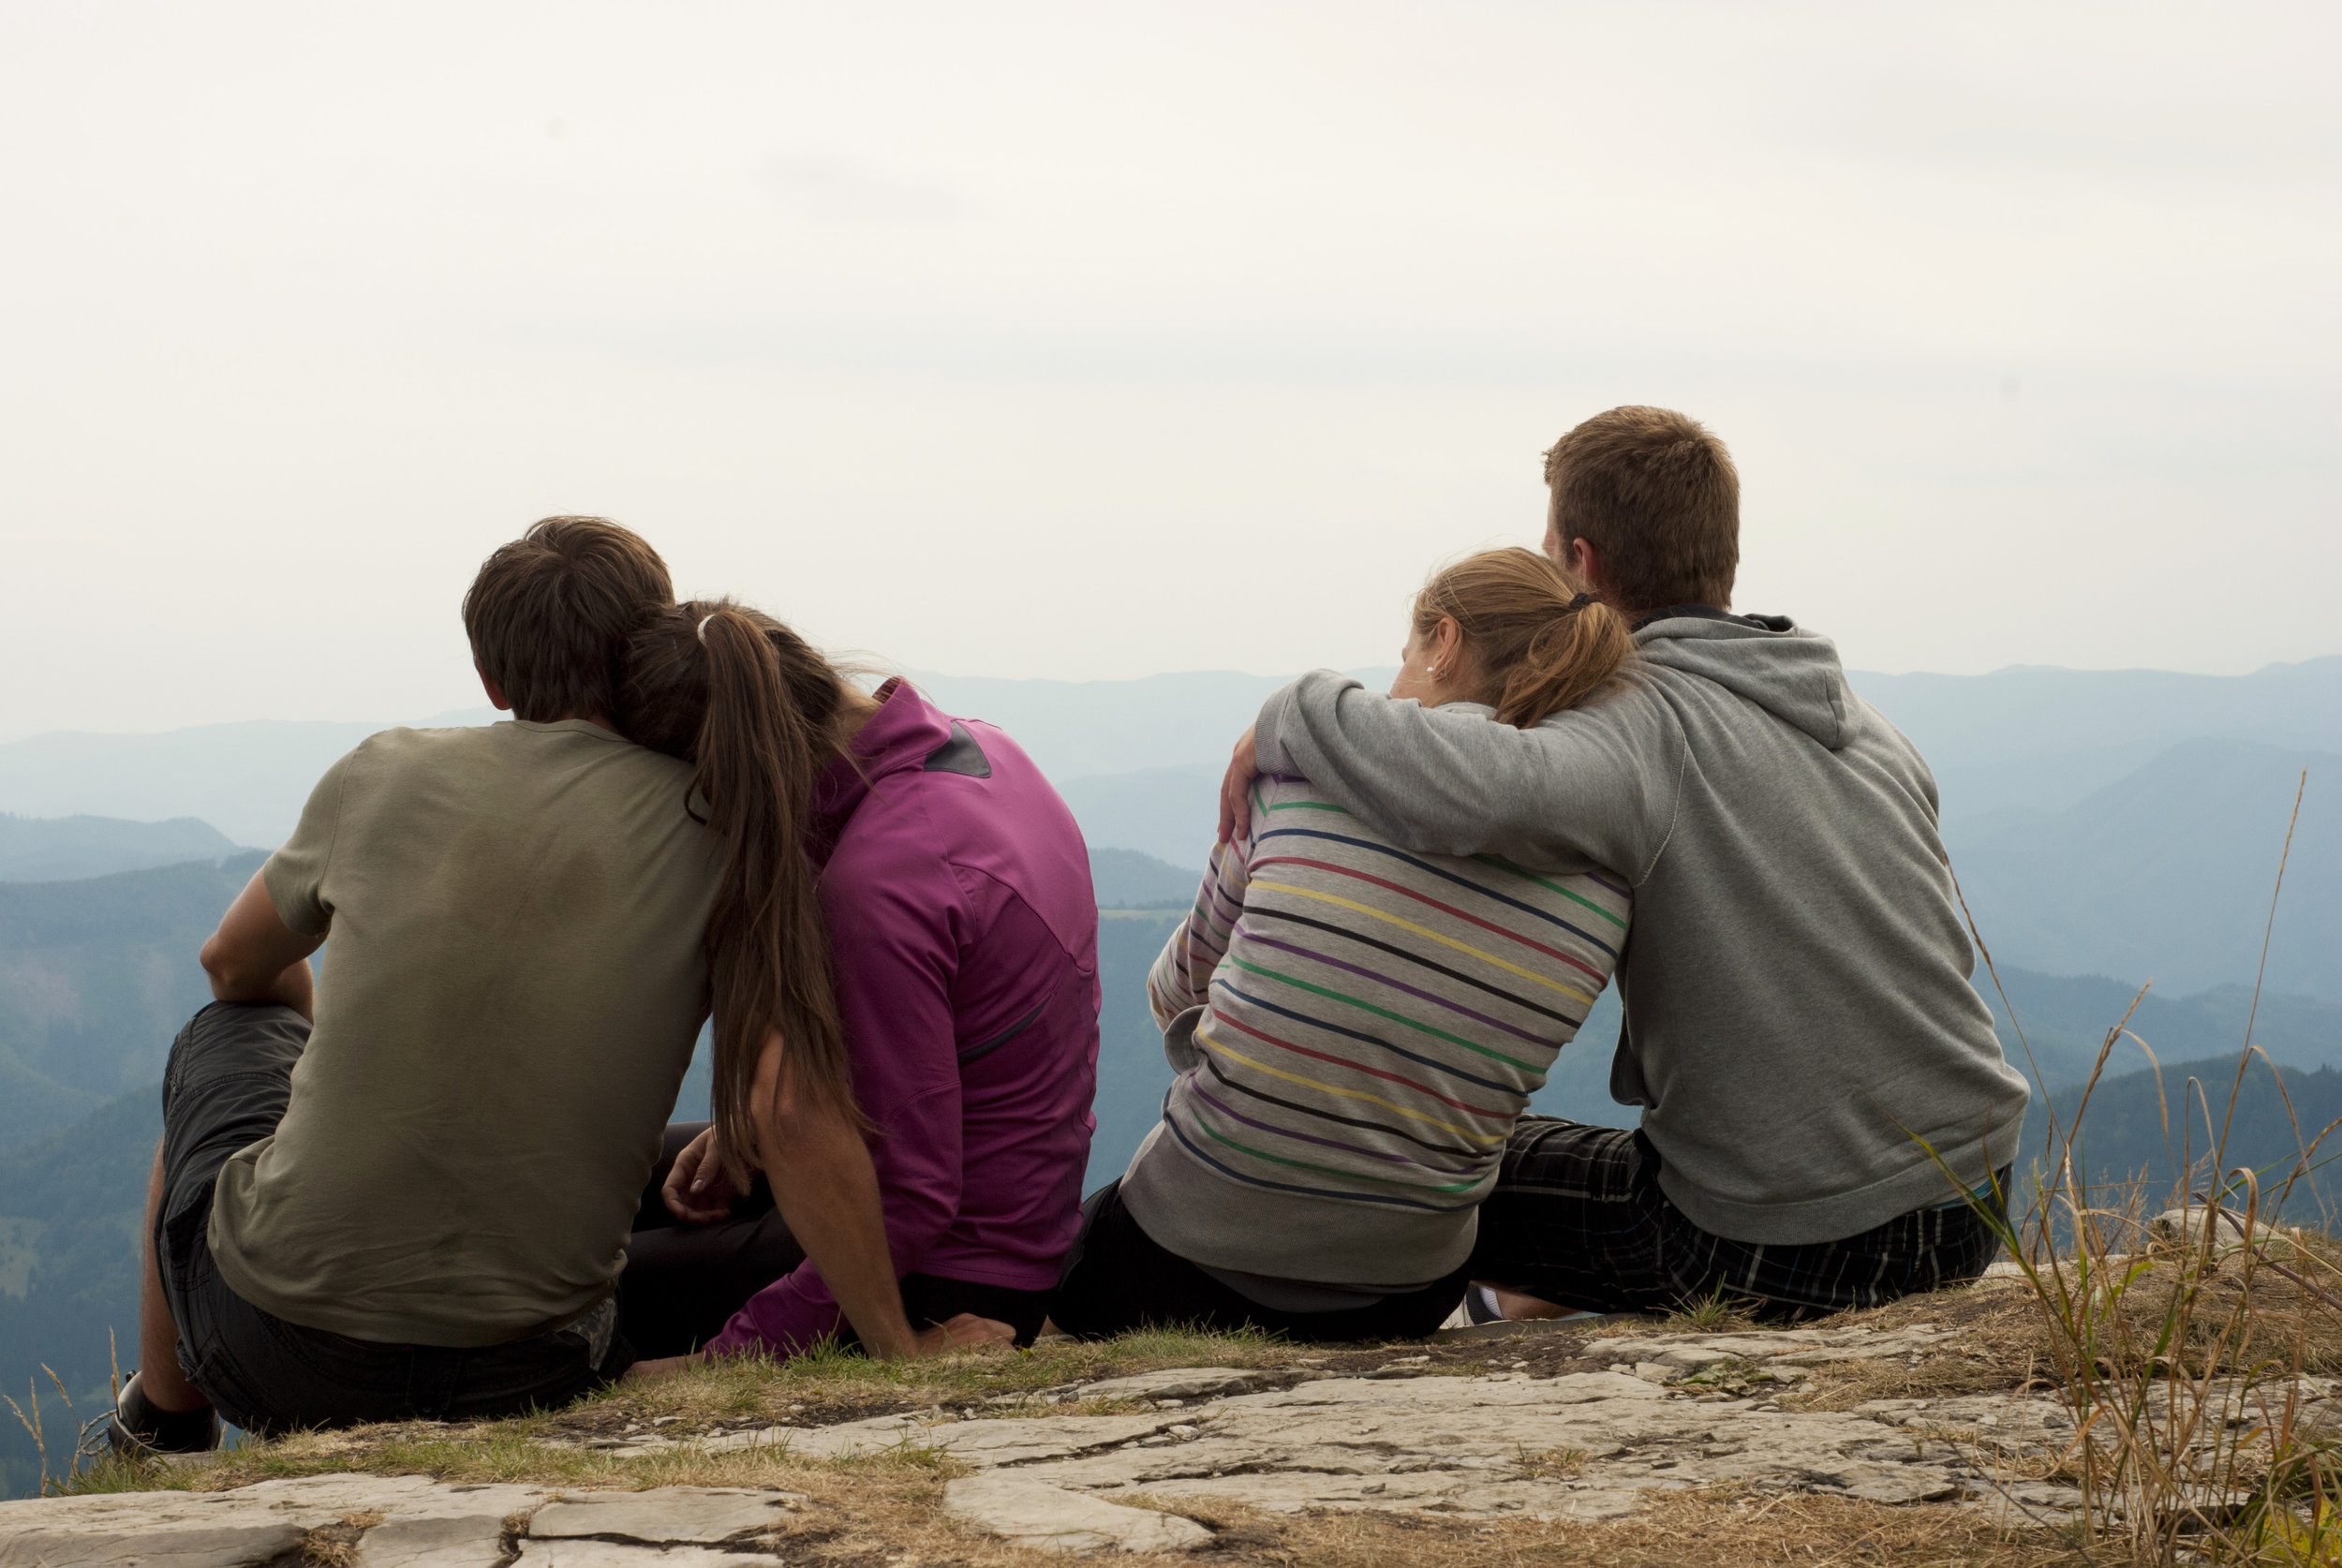 graphicstock-hikers-on-the-top-of-mountains-are-resting-in-the-wild-nature_S0BIJE2-Z.jpg